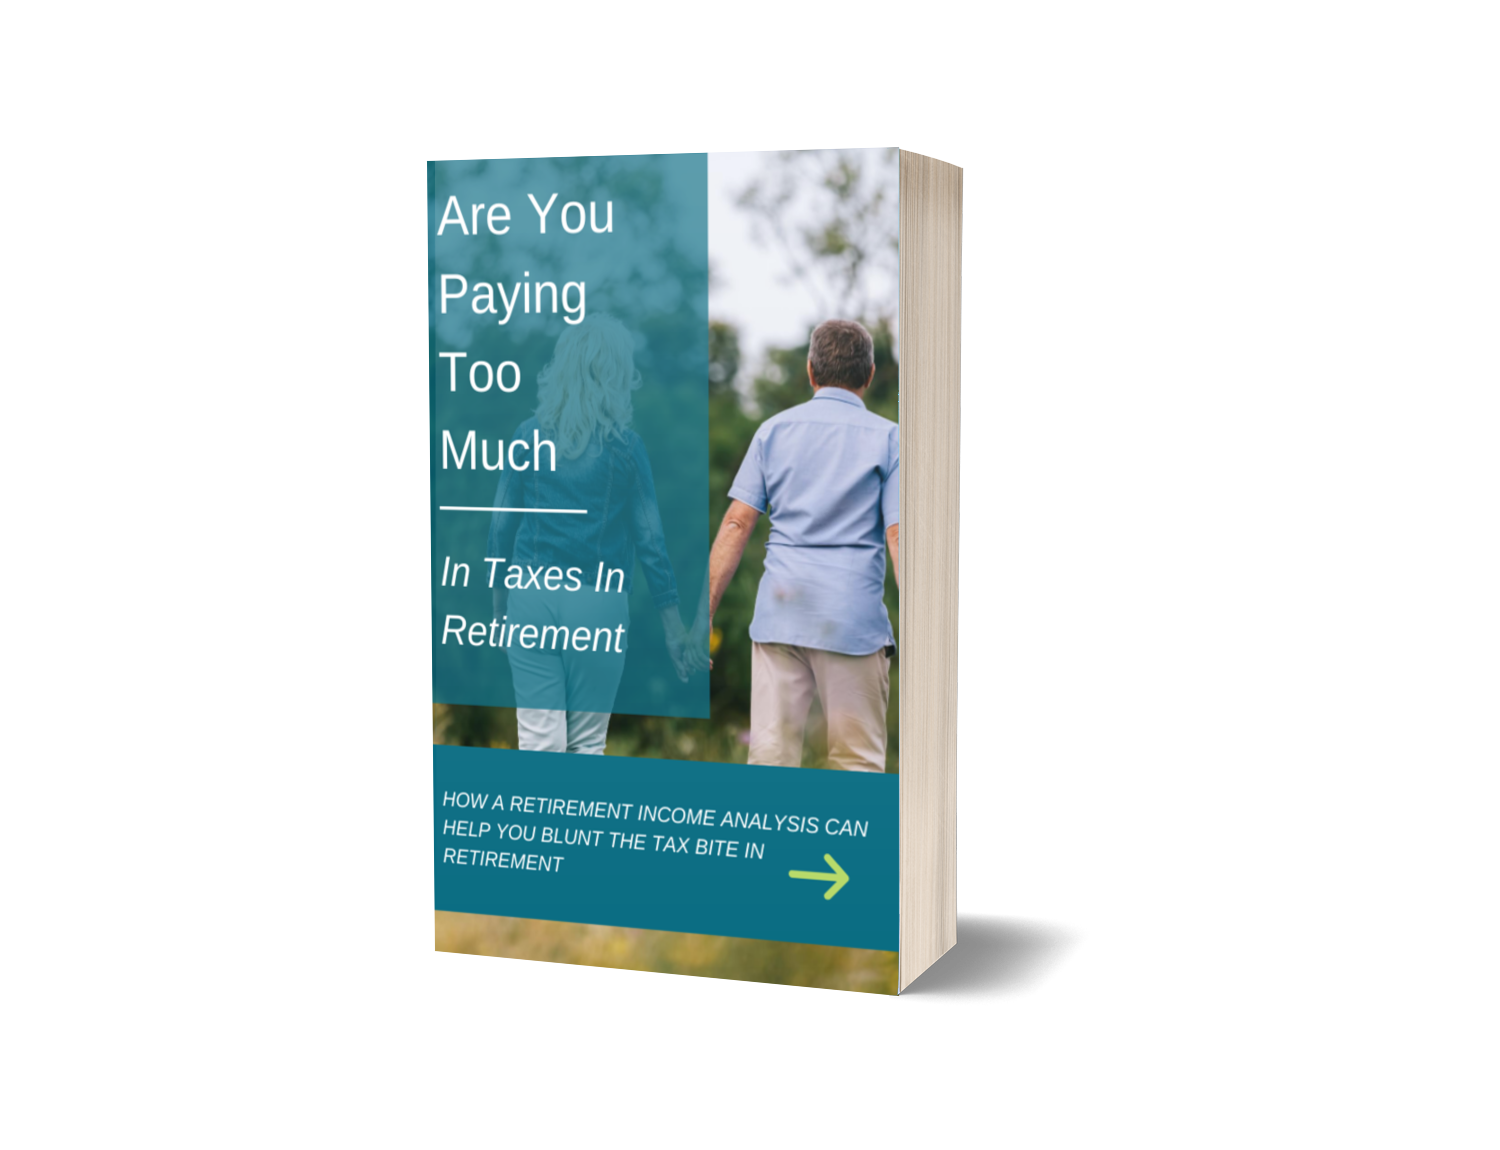 Are You Paying Too Much_eBook Cover